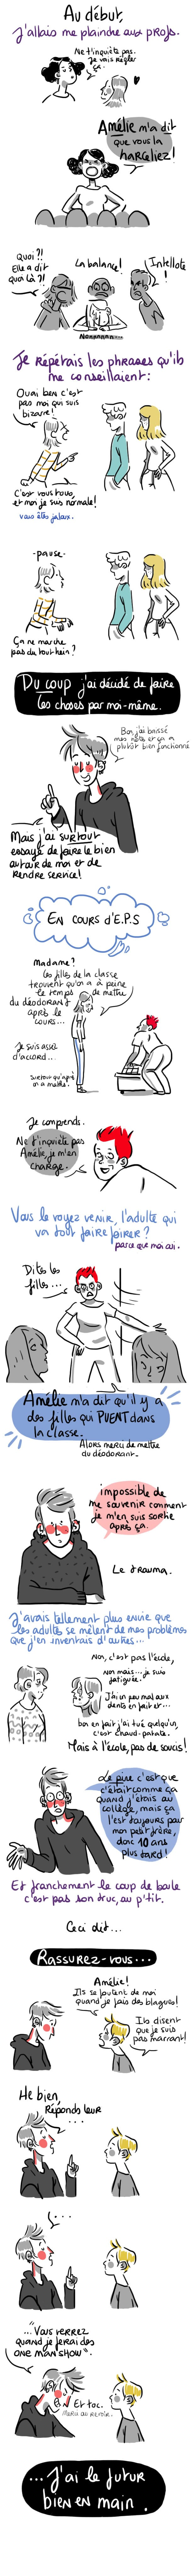 harcelement-scolaire-adultes-2